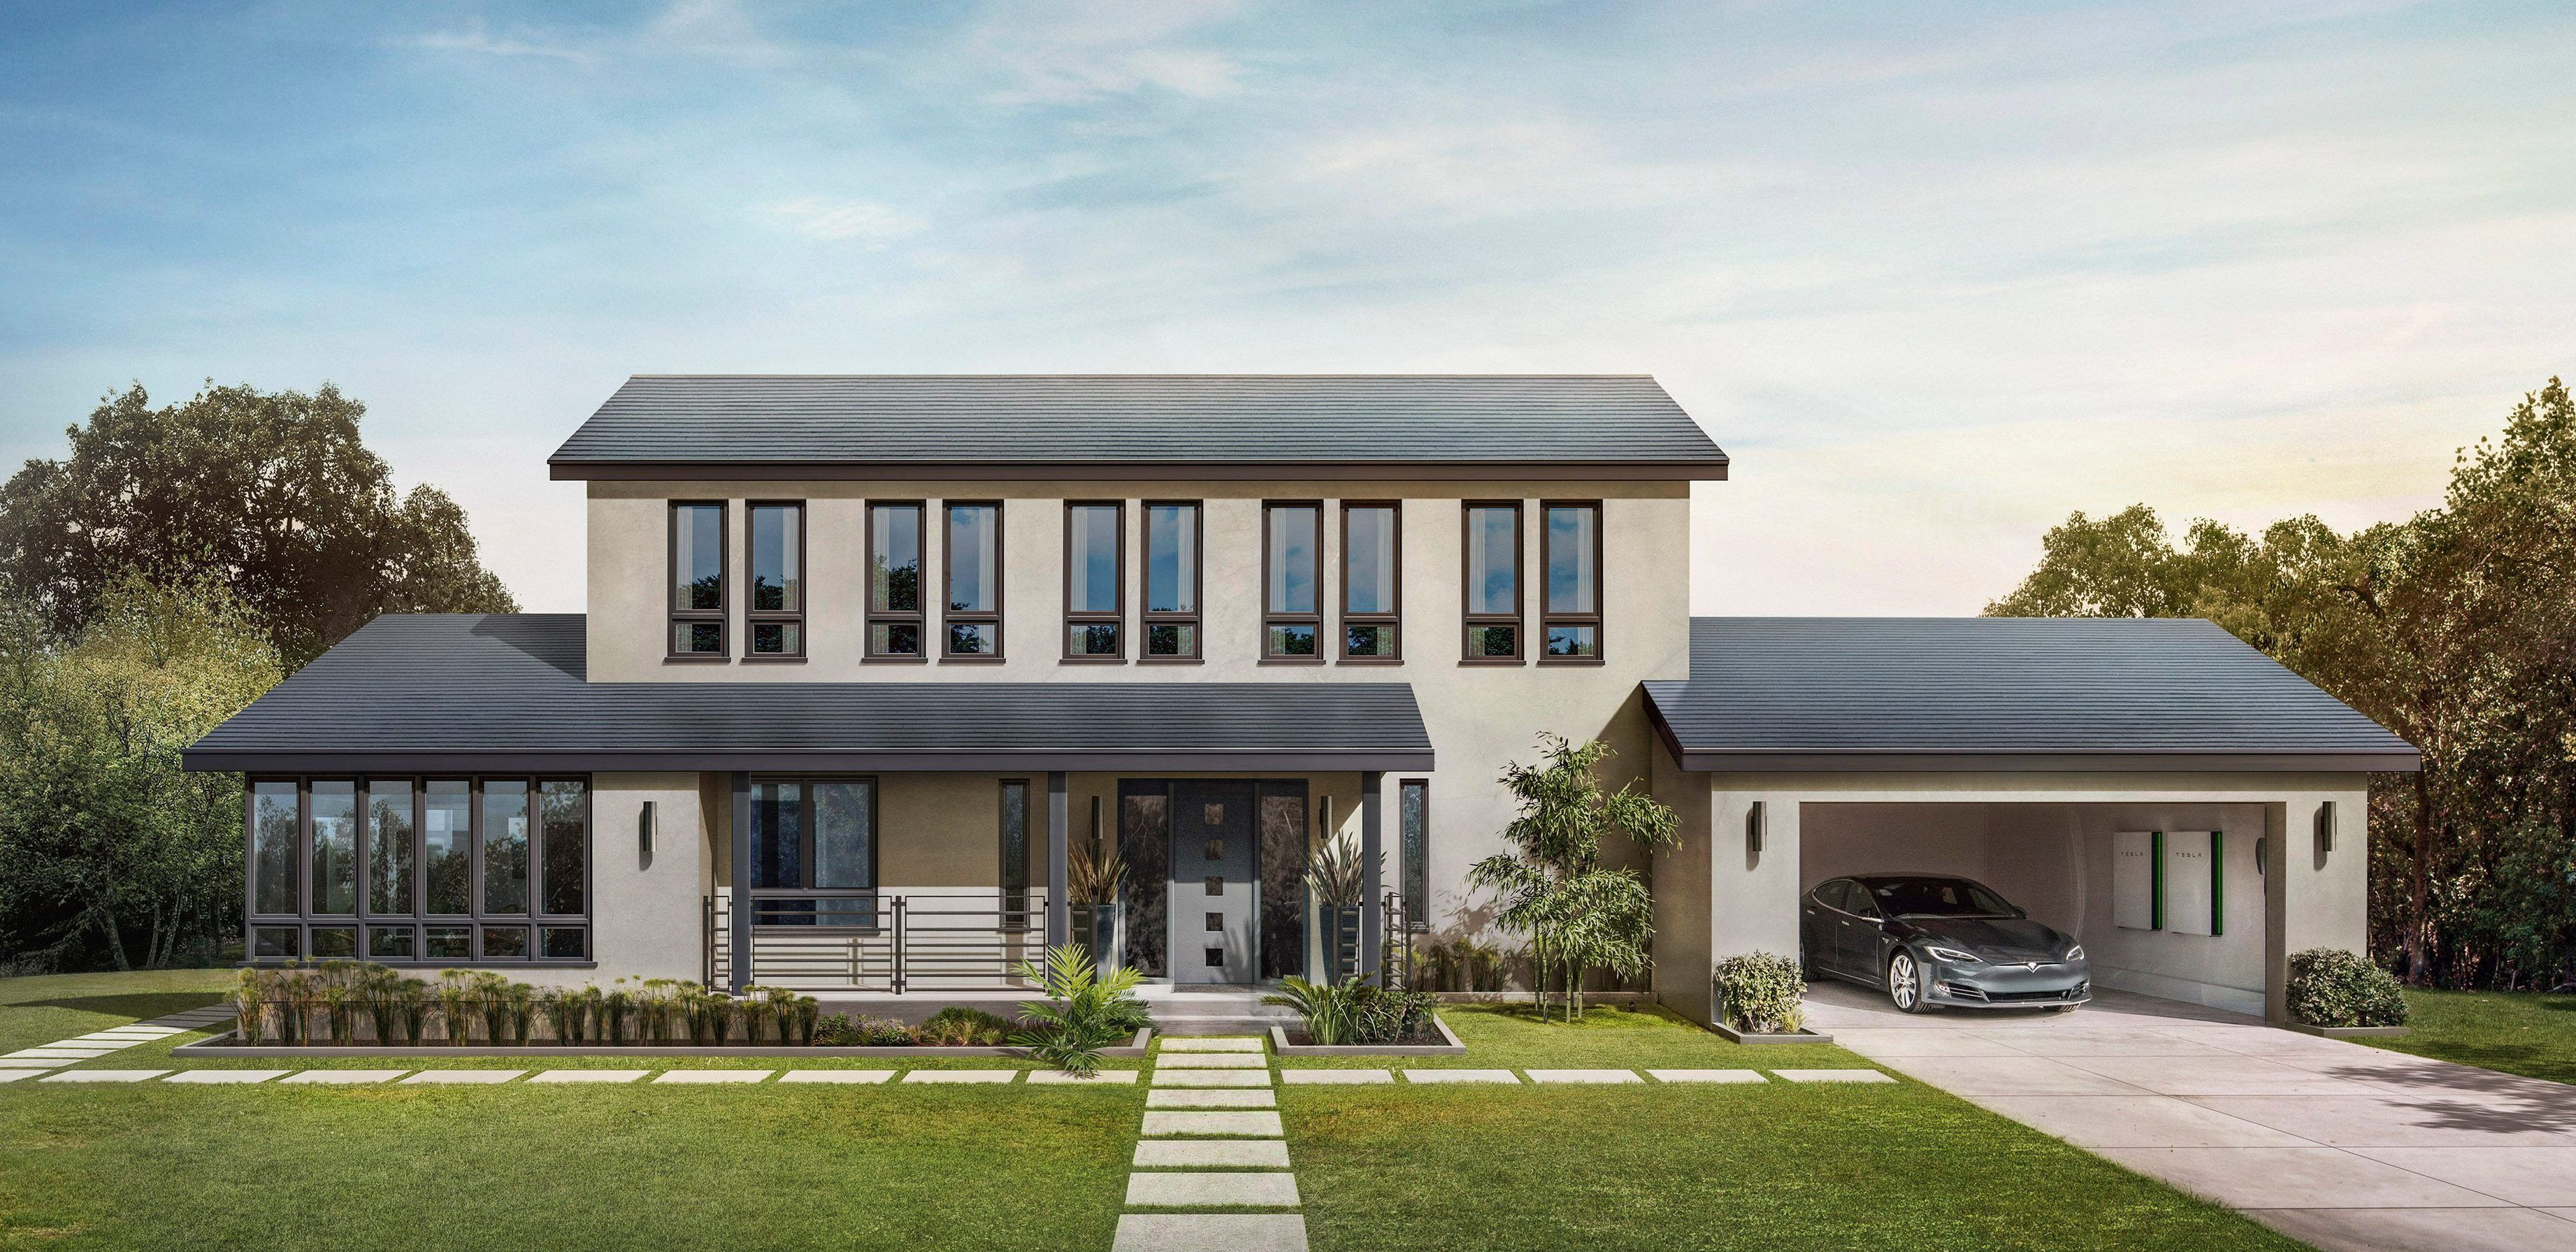 Elon Musk hints at a 'Tesla Smart Home' with more